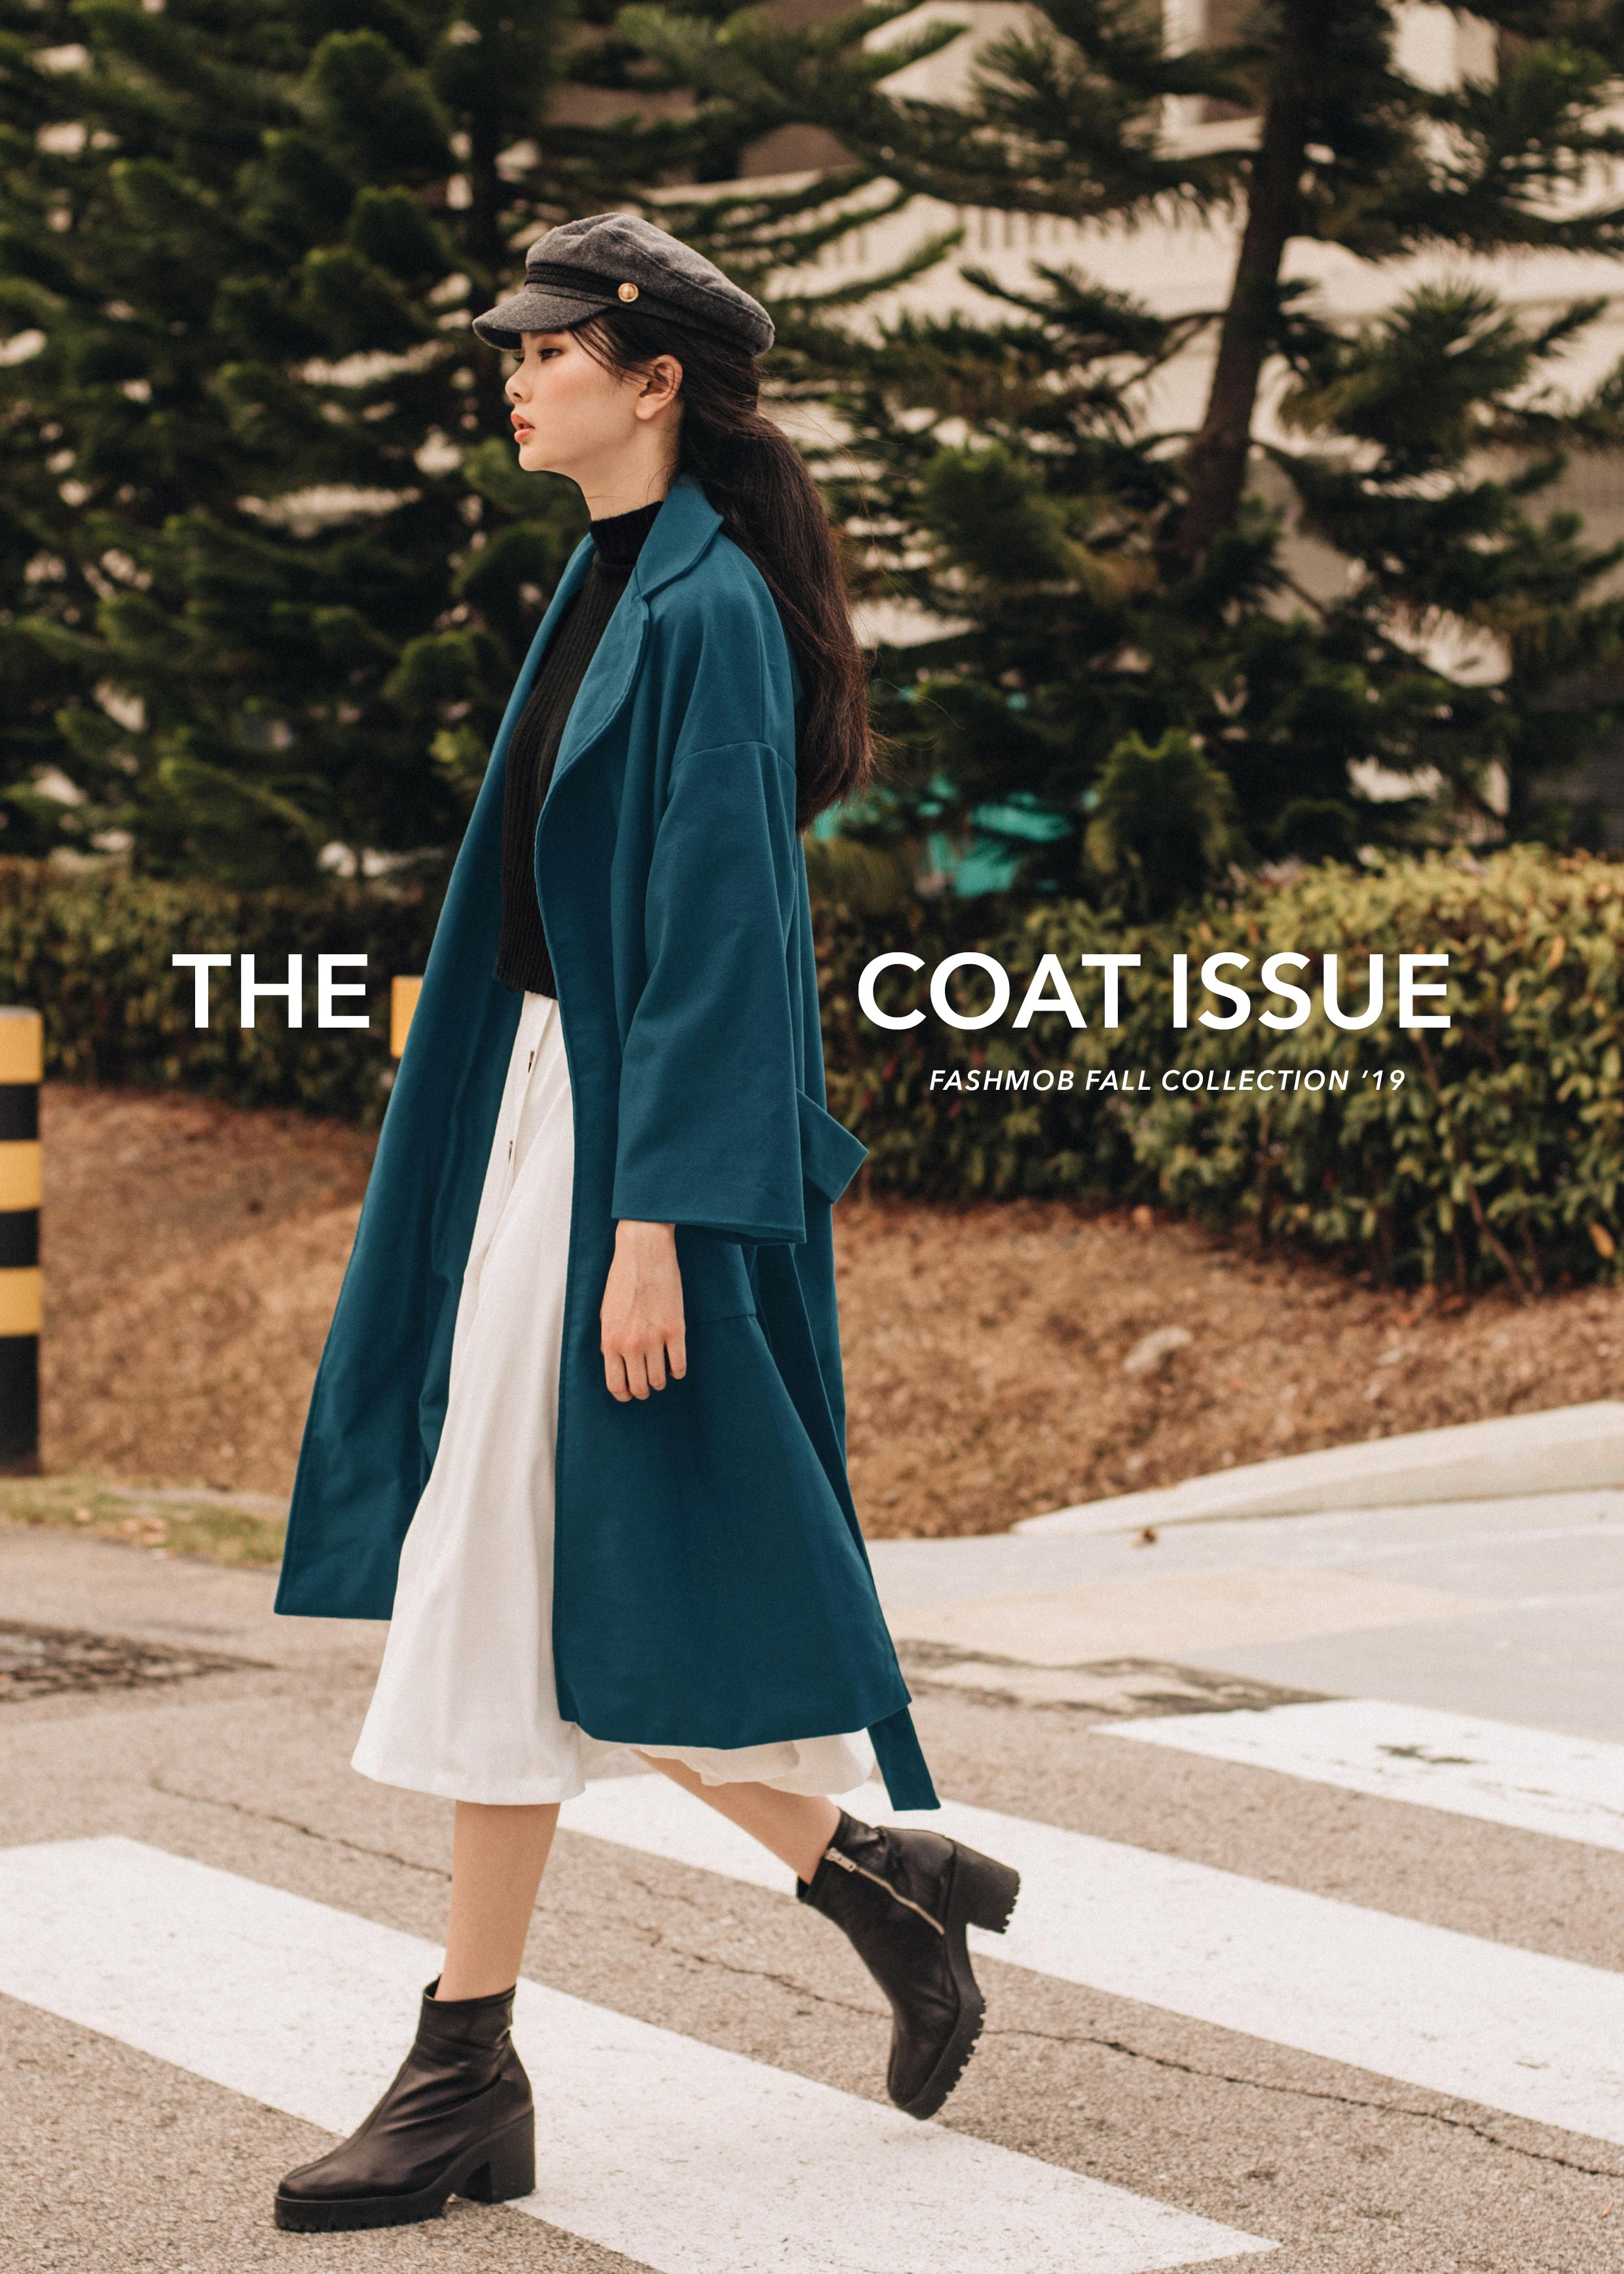 THE COAT ISSUE